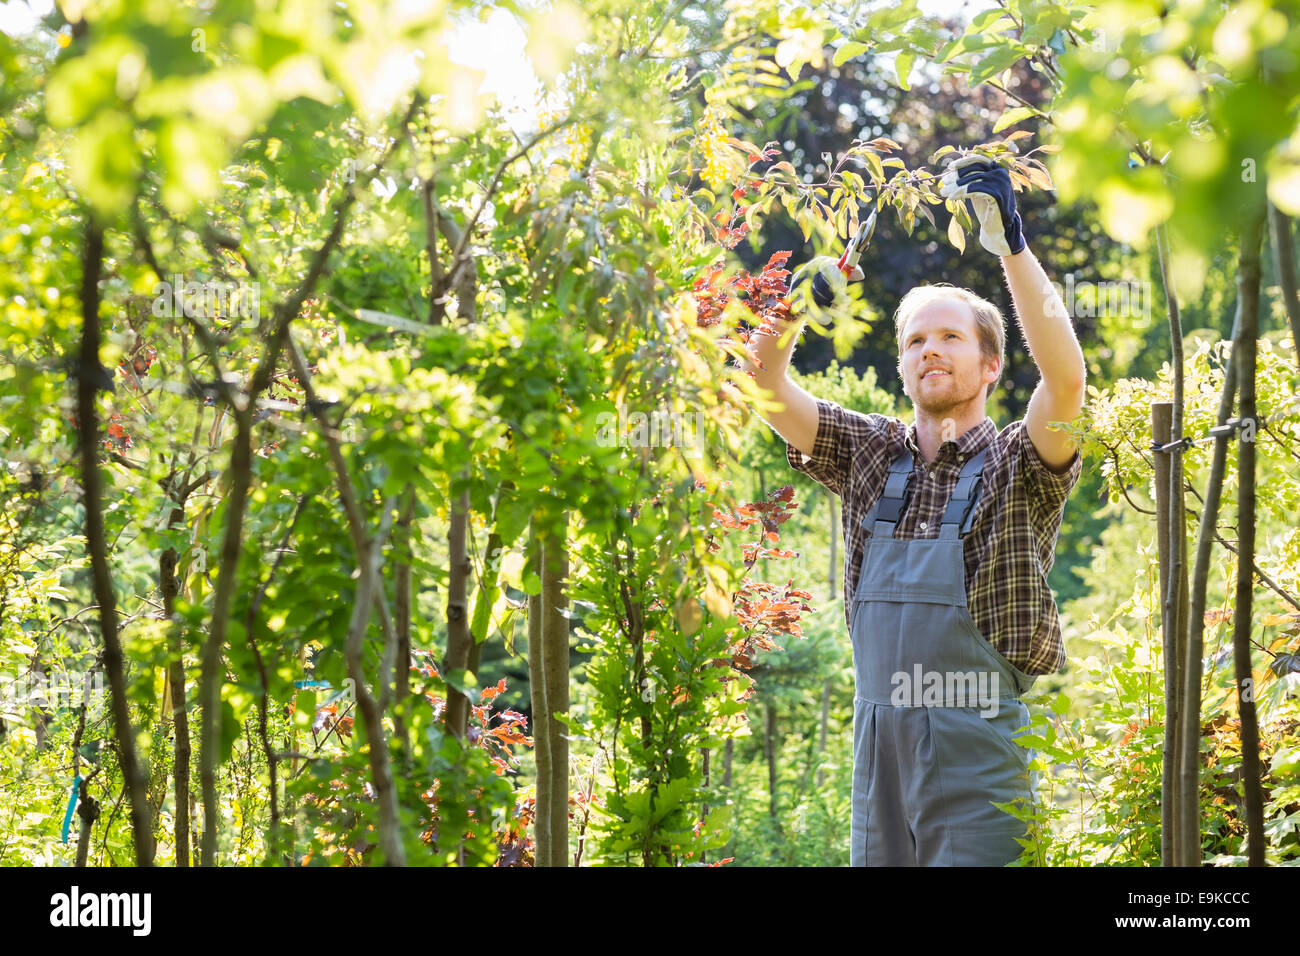 Man clipping branch in garden - Stock Image